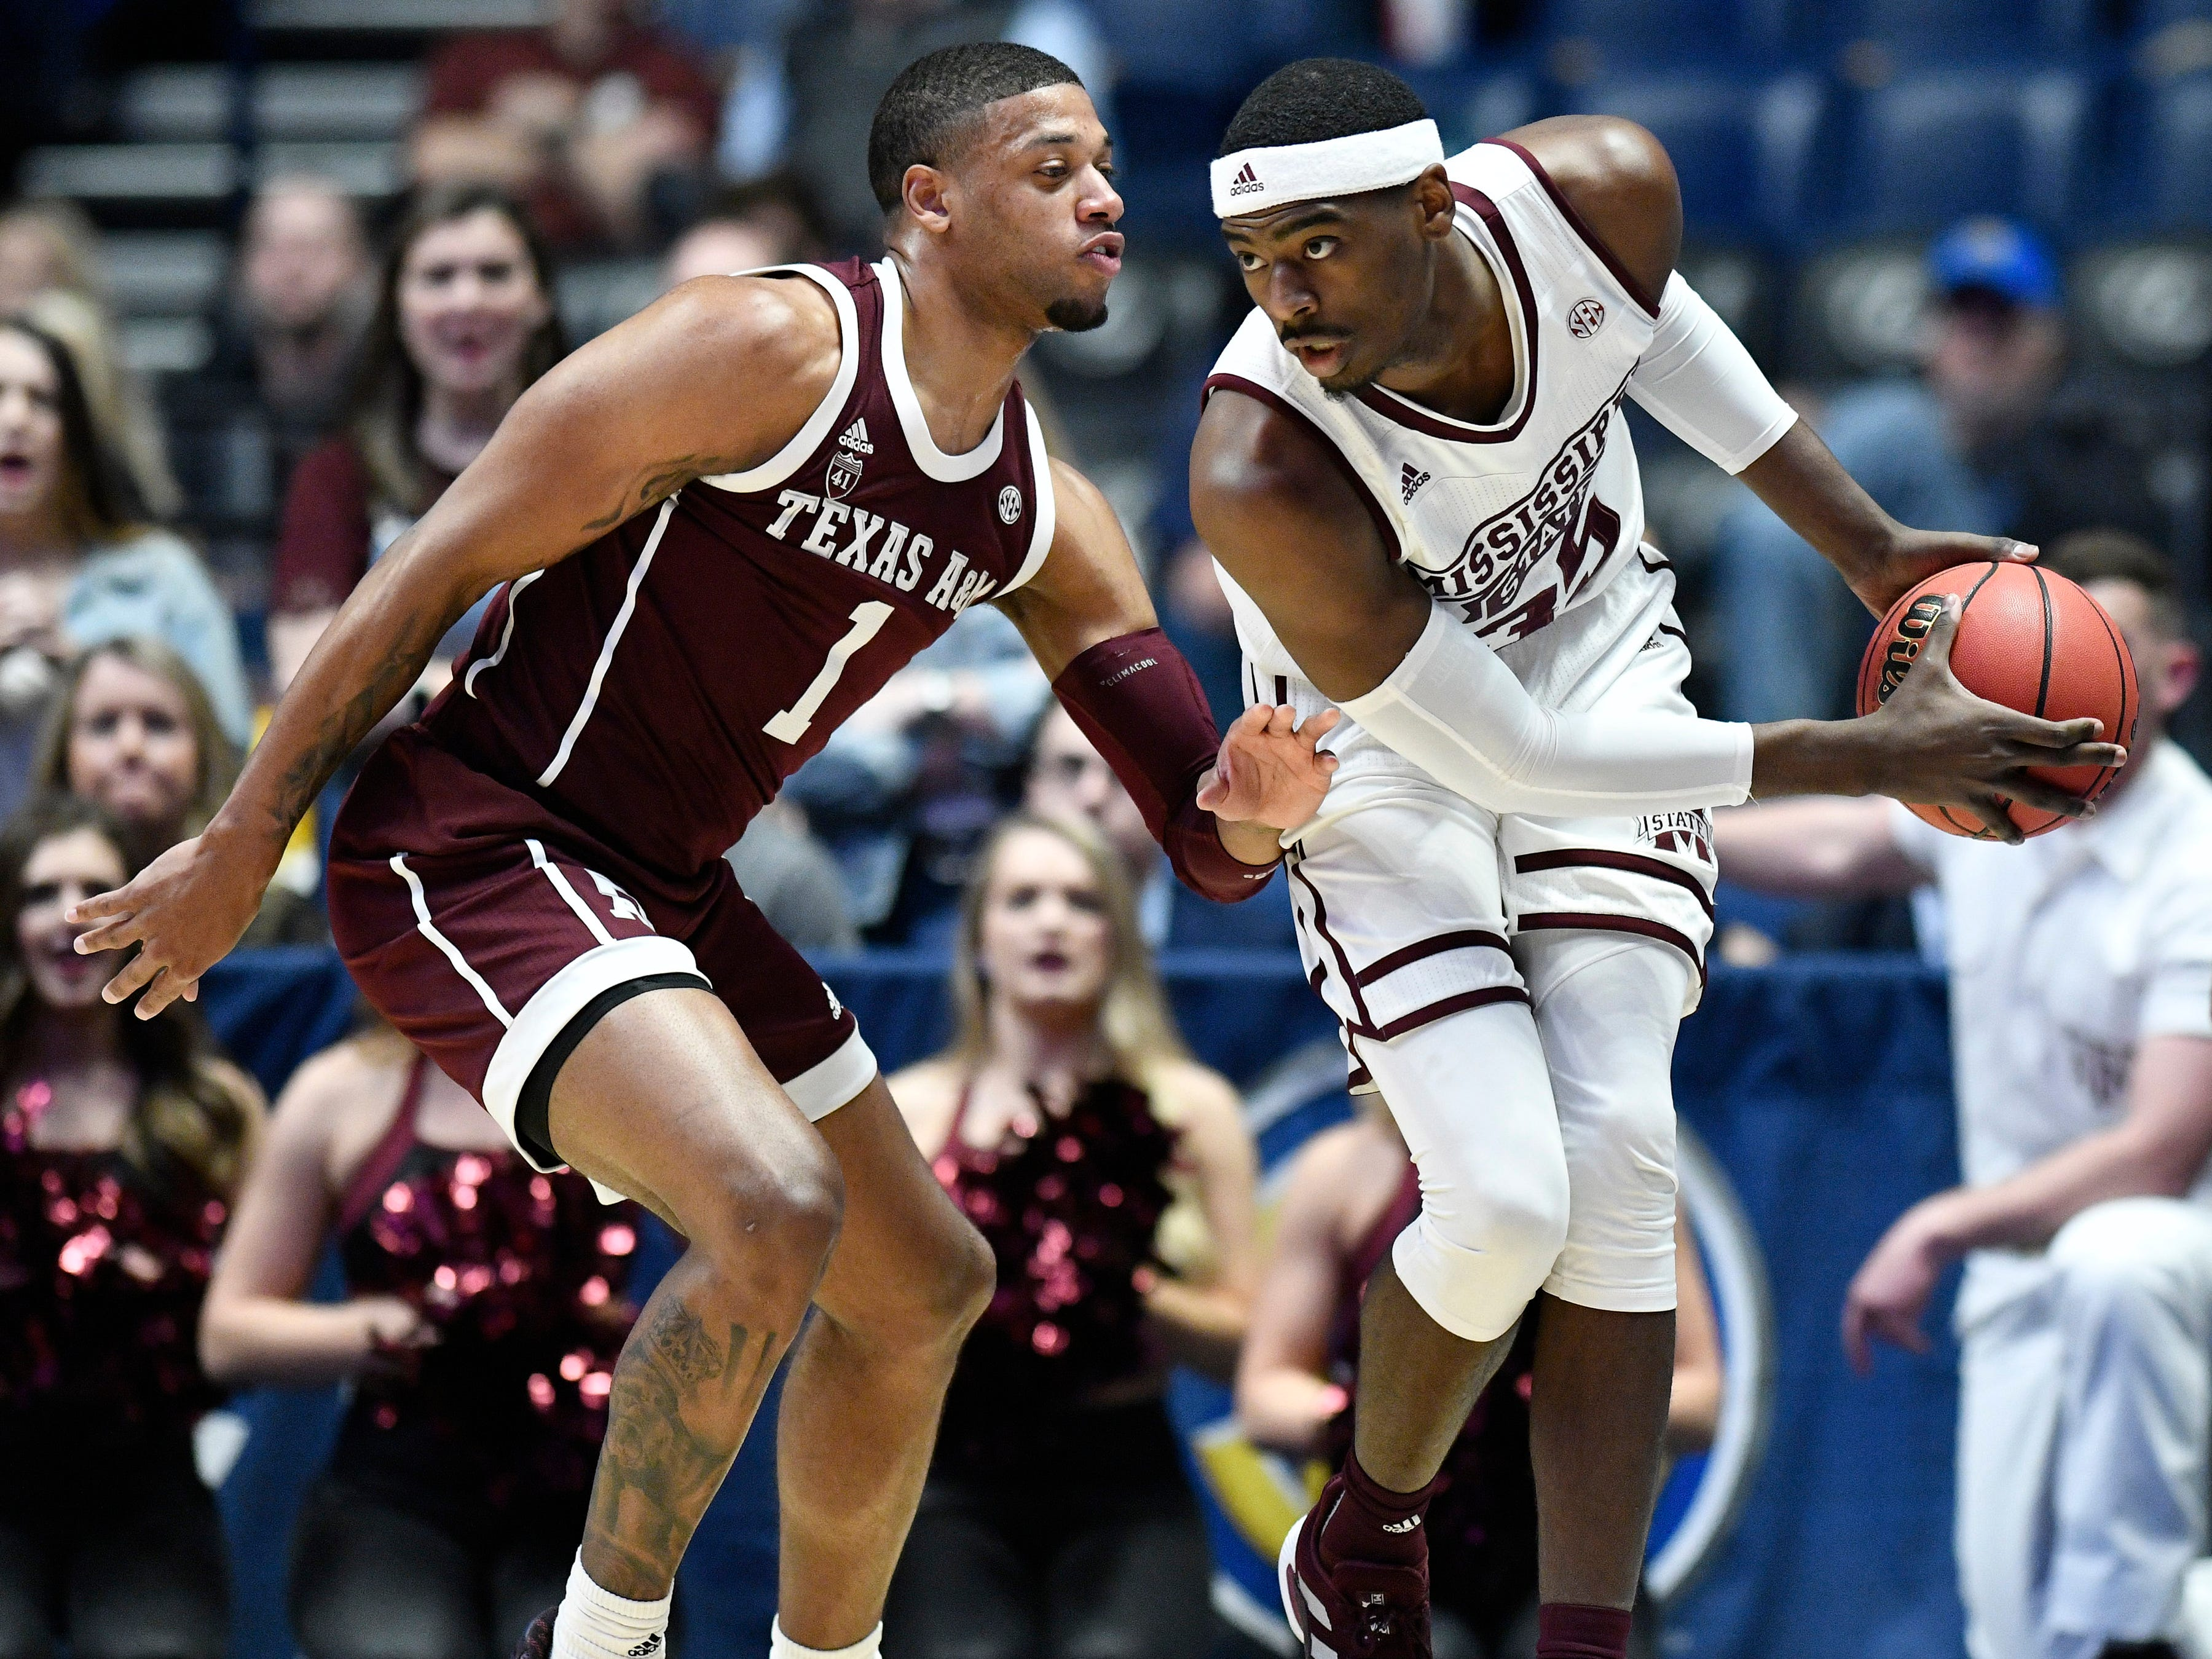 Mississippi State forward Aric Holman (35) moves the ball defended by Texas A&M guard Savion Flagg (1) during the first half of the SEC Men's Basketball Tournament game at Bridgestone Arena in Nashville, Tenn., Thursday, March 14, 2019.